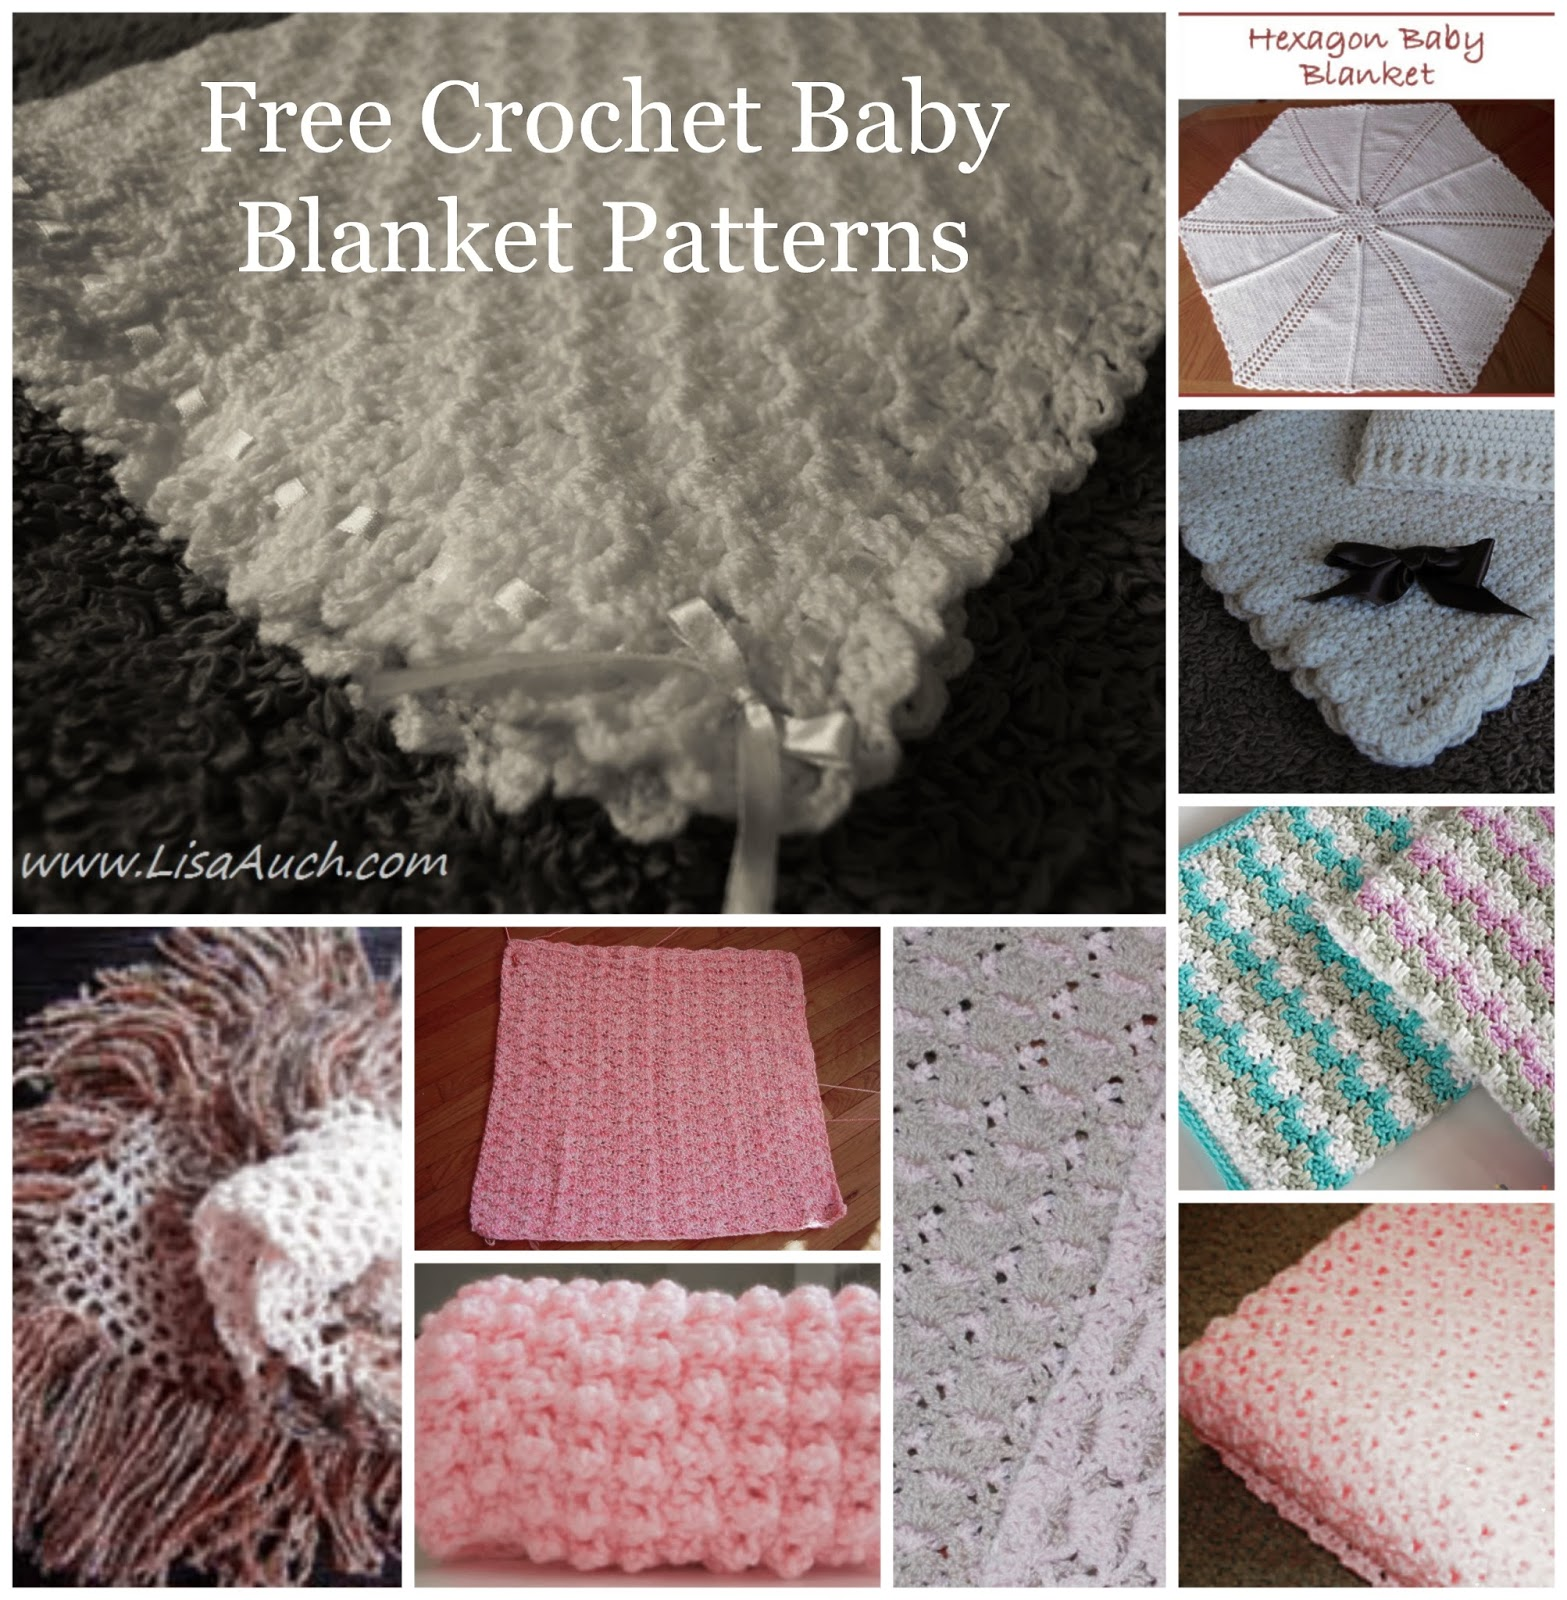 free baby blanket crochet patterns-crochet patterns free-free crochet babby blanket patterns